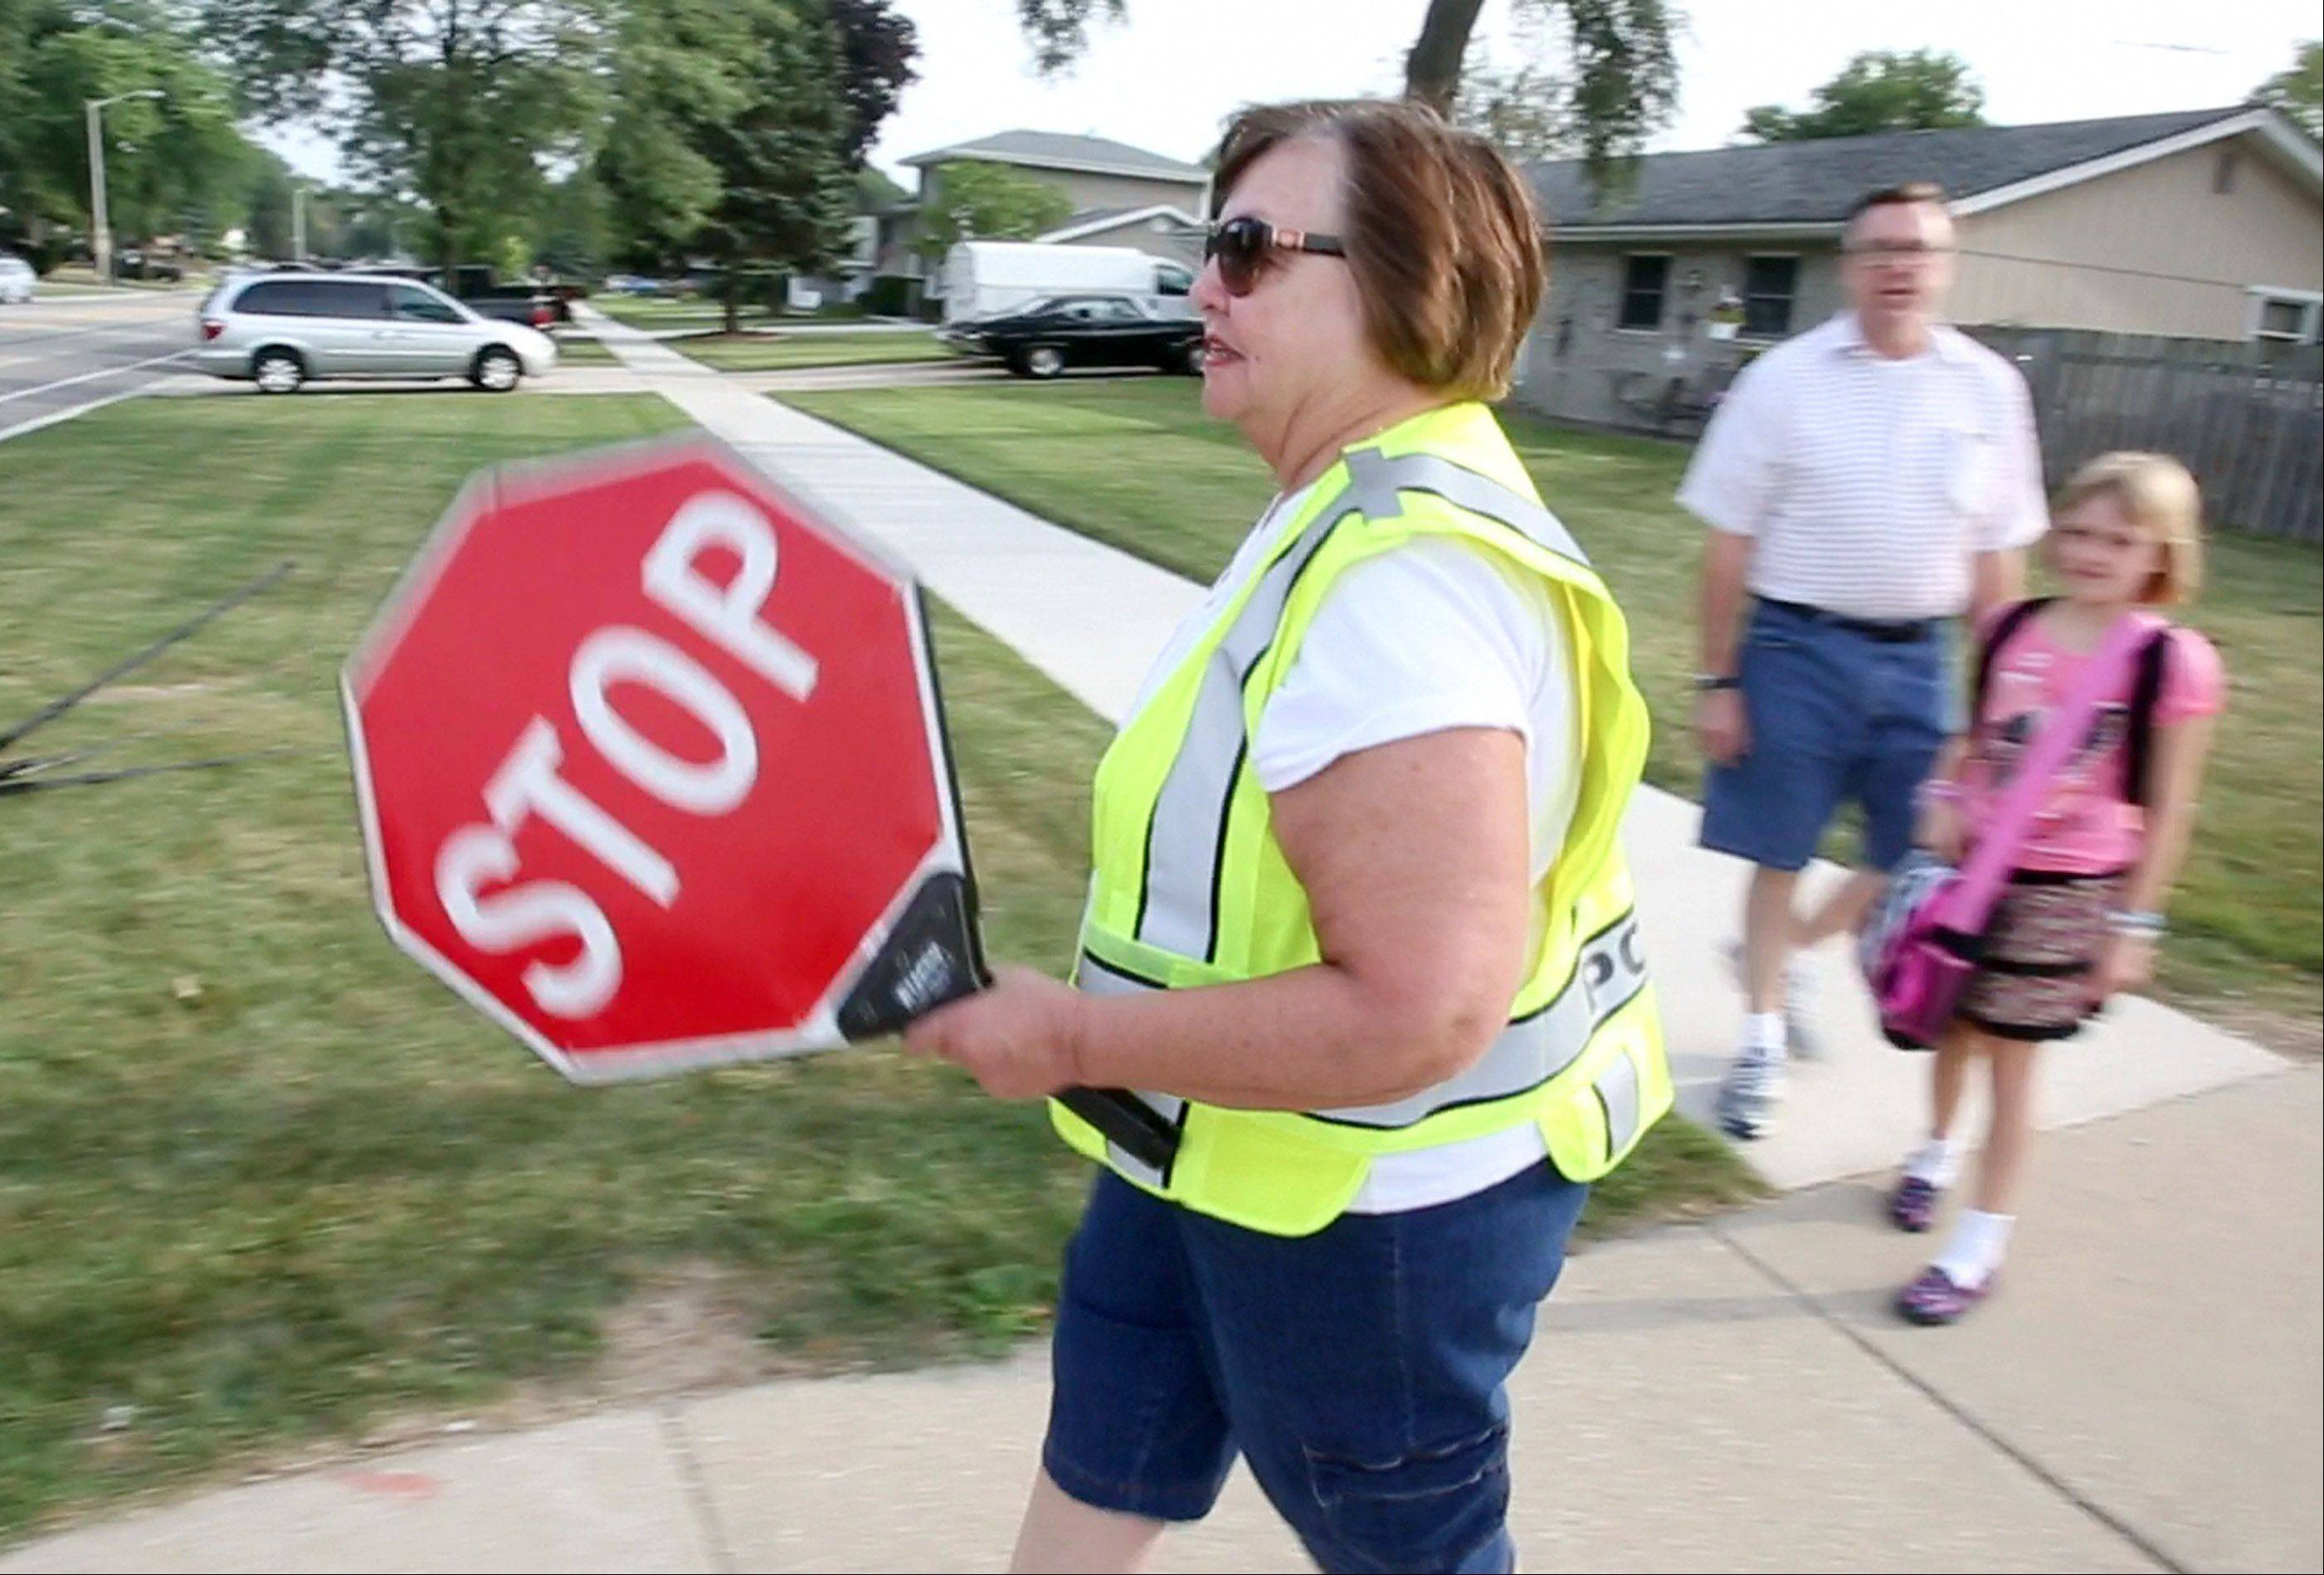 Sue Denys of Schaumburg was among the crossing guards honored Tuesday as Schaumburg police marked Crossing Guard Appreciation Day. Denys helps children only across the intersection of Braintree Drive and Wise Road on their way to Nathan Hale Elementary School.